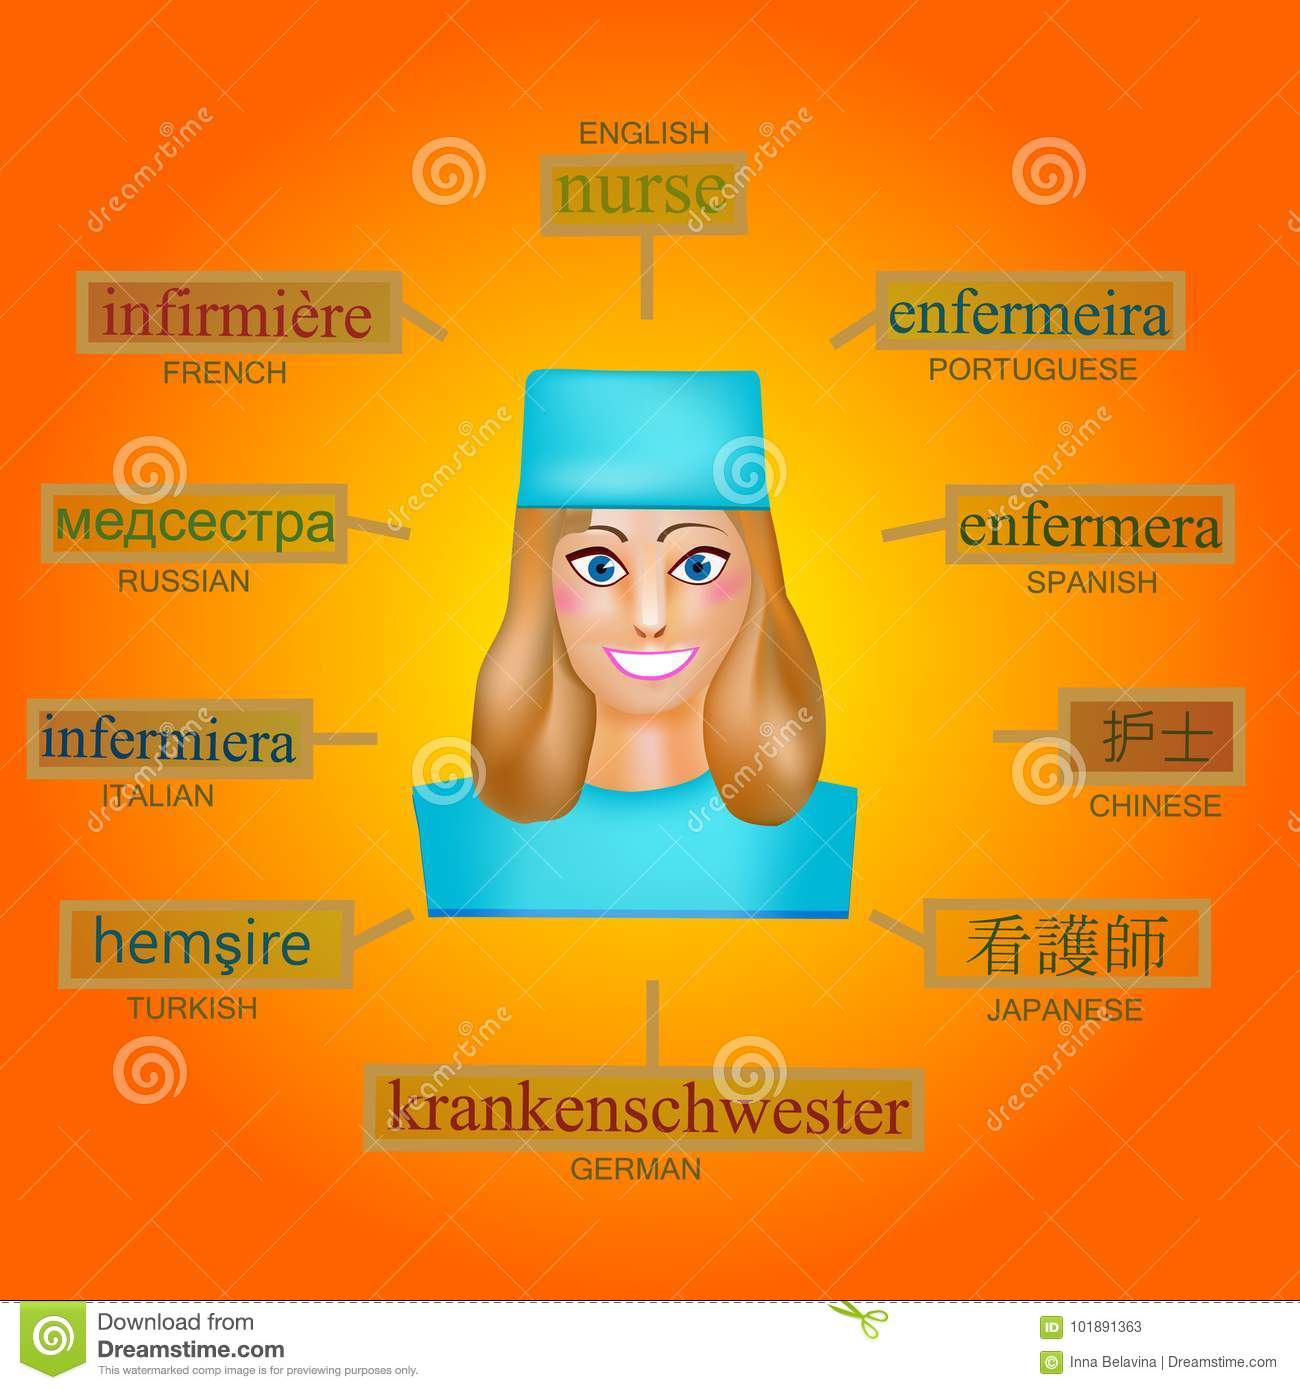 English In Italian: Avatar Of A Woman In The Professional Form Of Nurse. Image